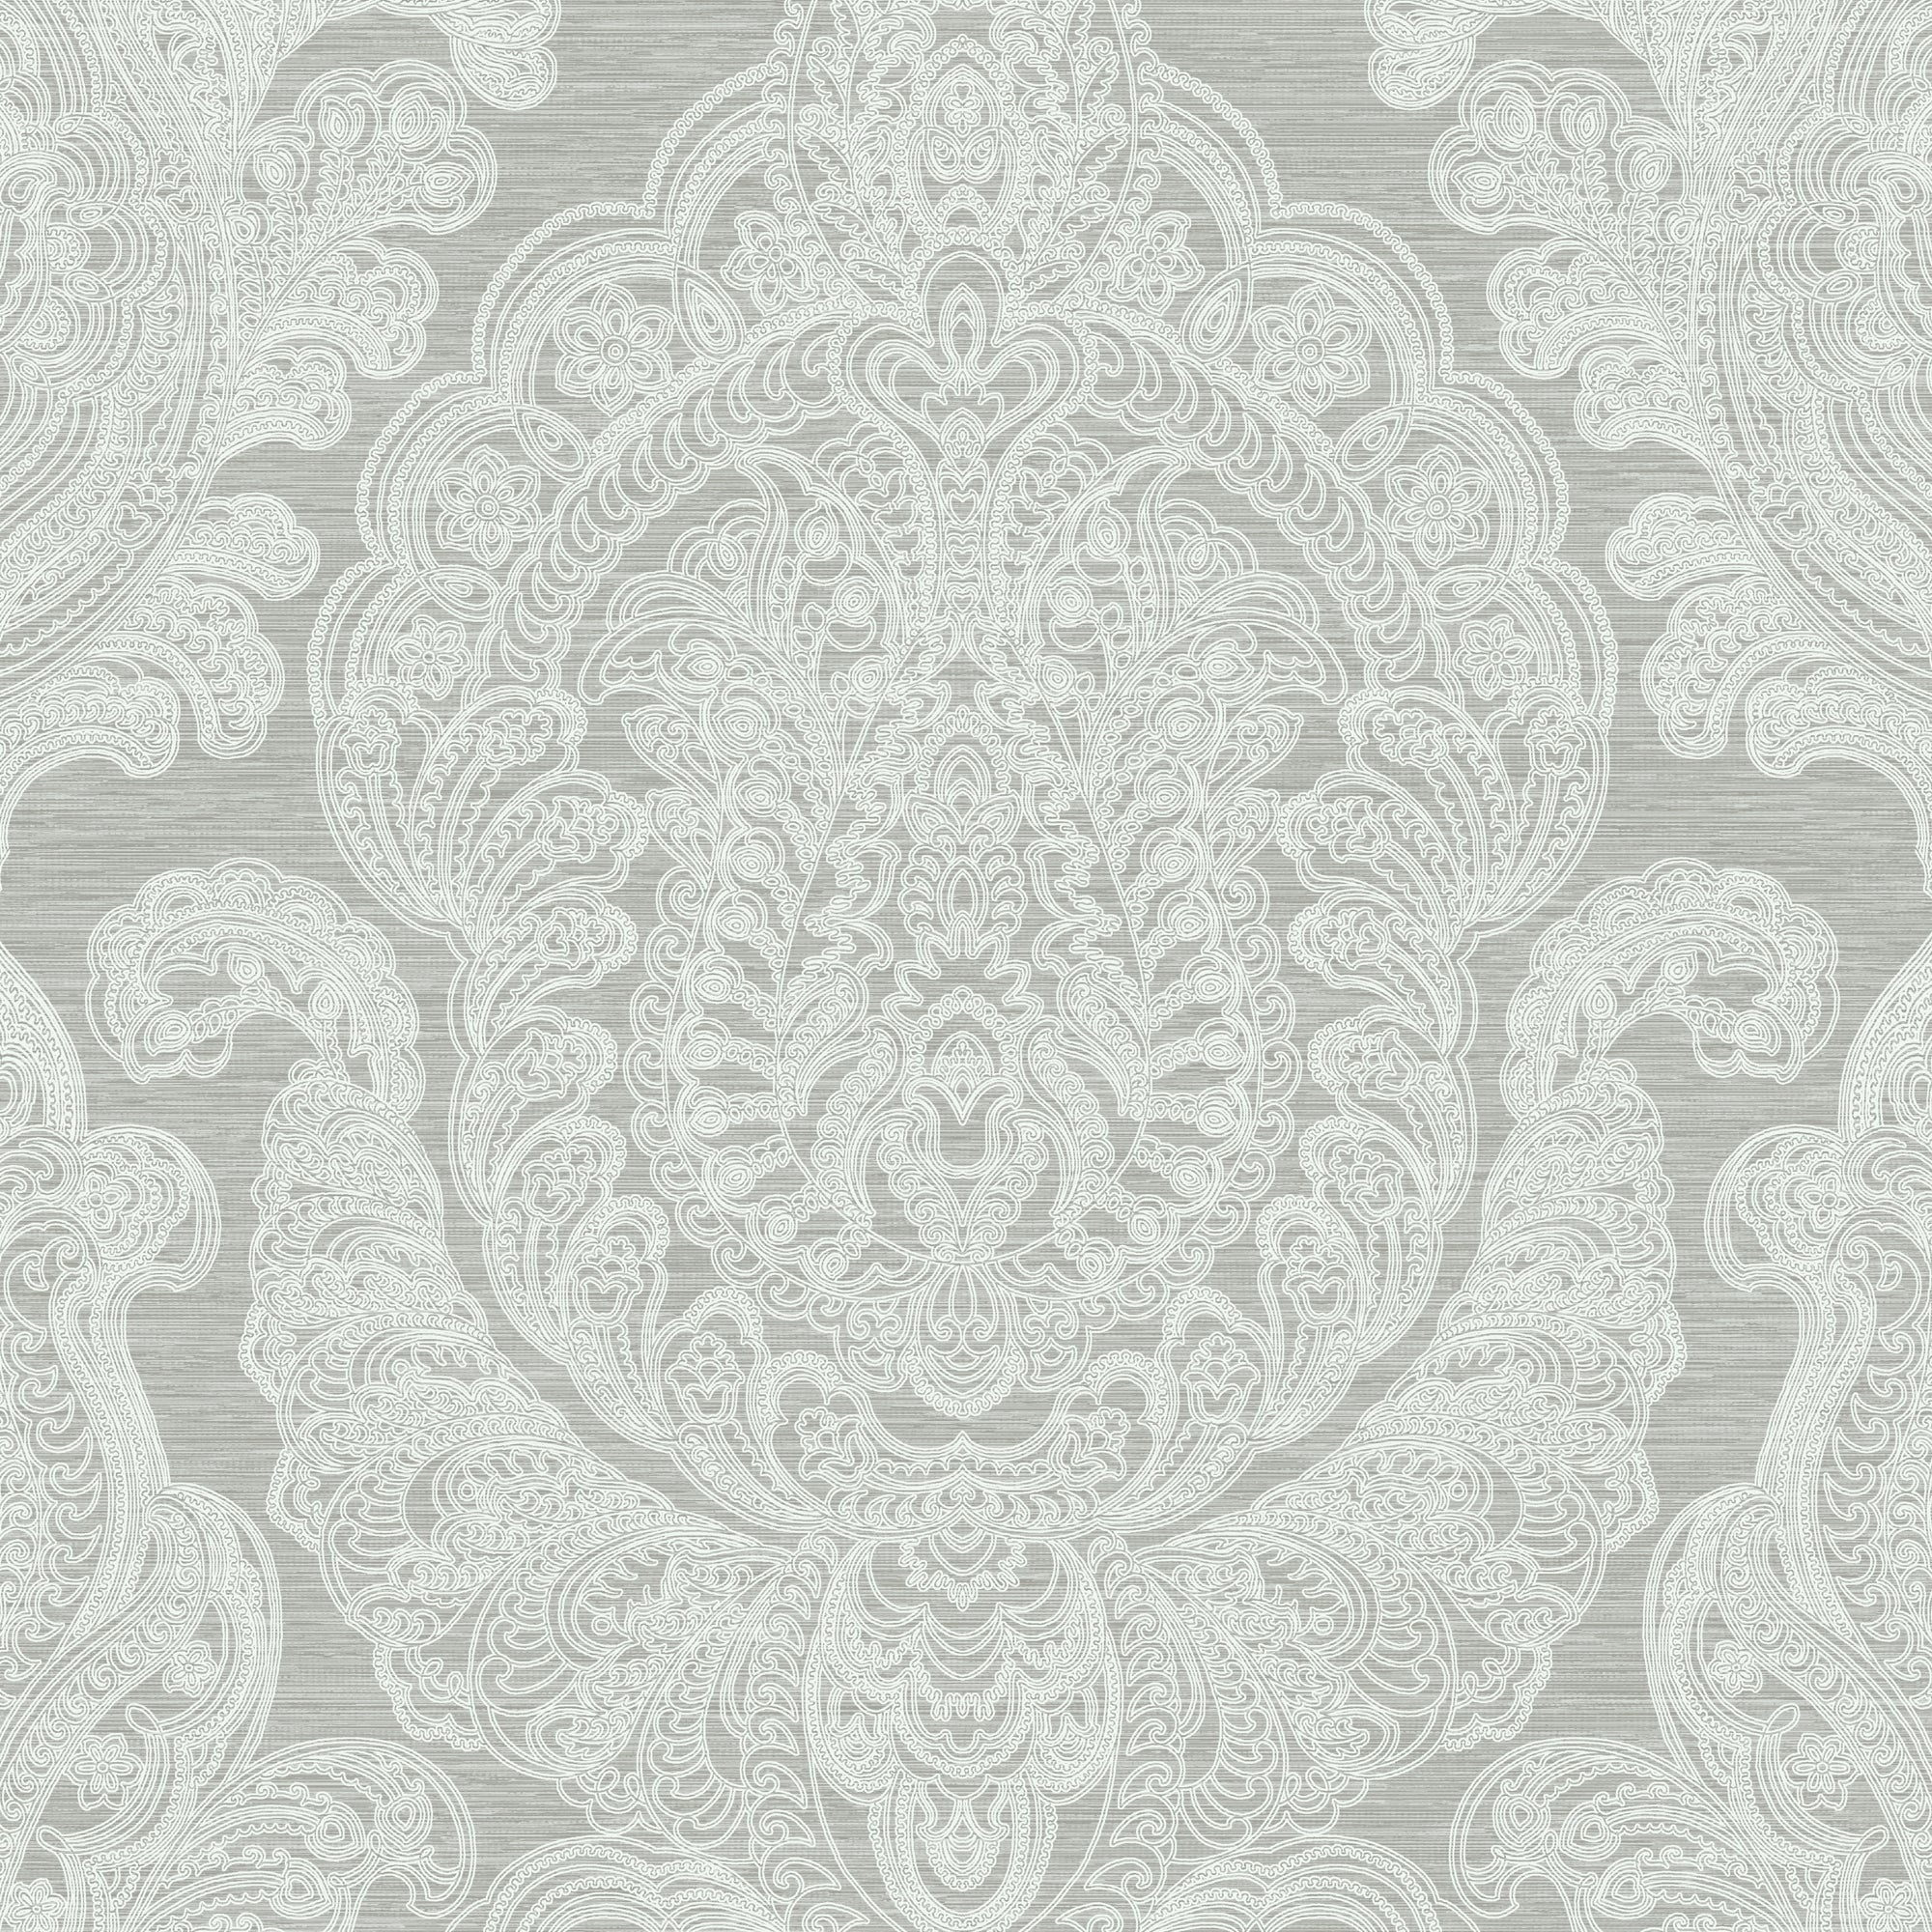 Damask In Silver And Grey, 8192 92